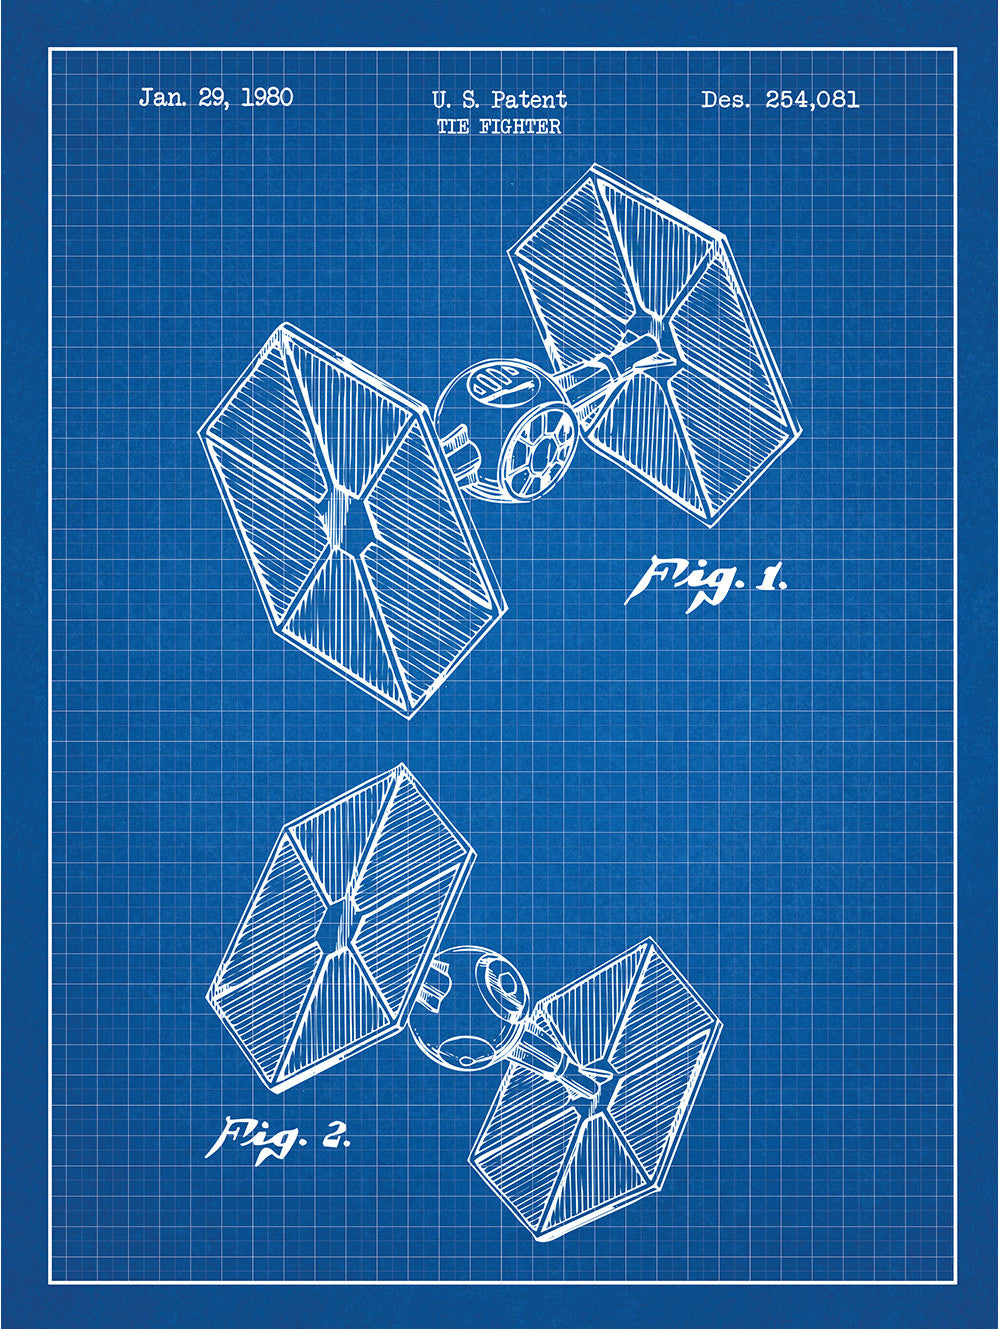 (U13) - Star Wars Vehicles: Tie Fighter